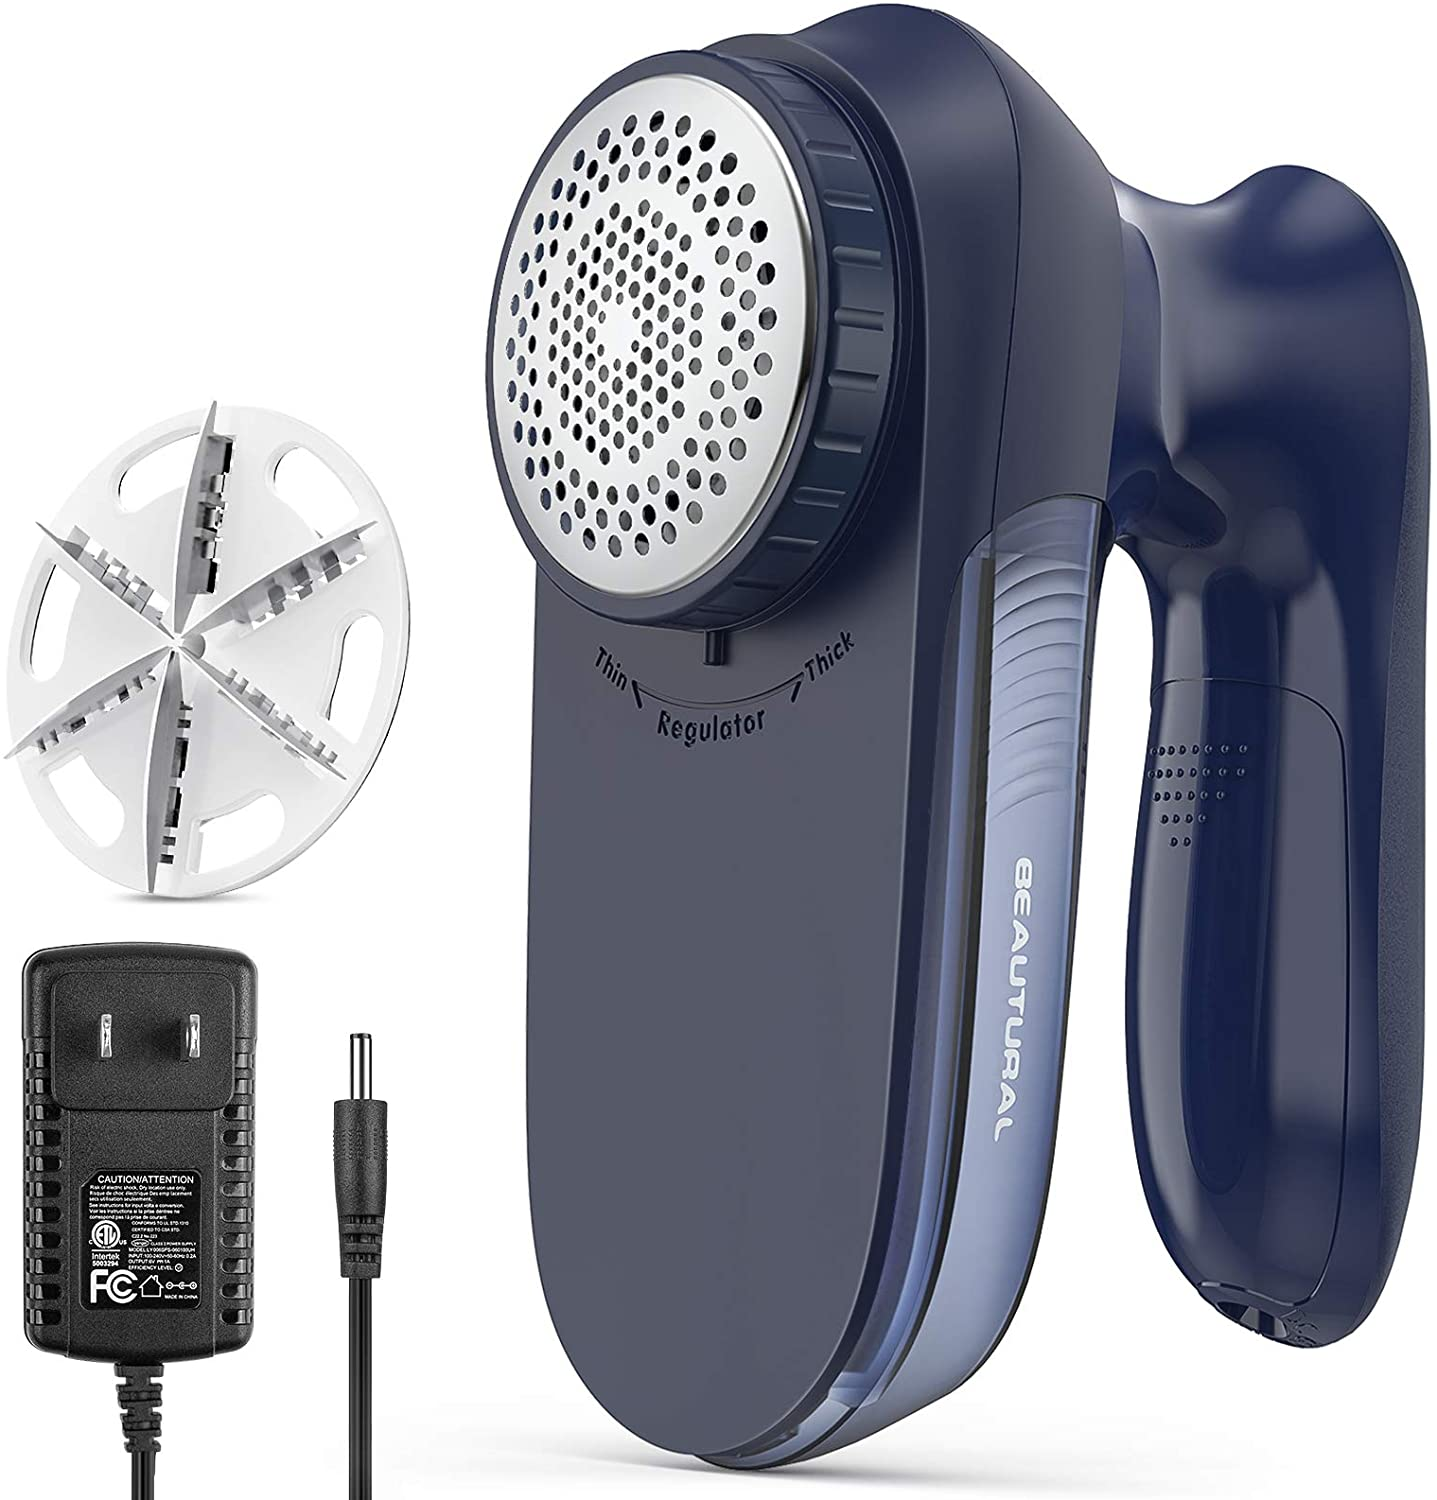 7 best fabric shavers herstylecode 2 7 Best Fabric Shavers in 2021 - Top Pill Removers that Worth Buying